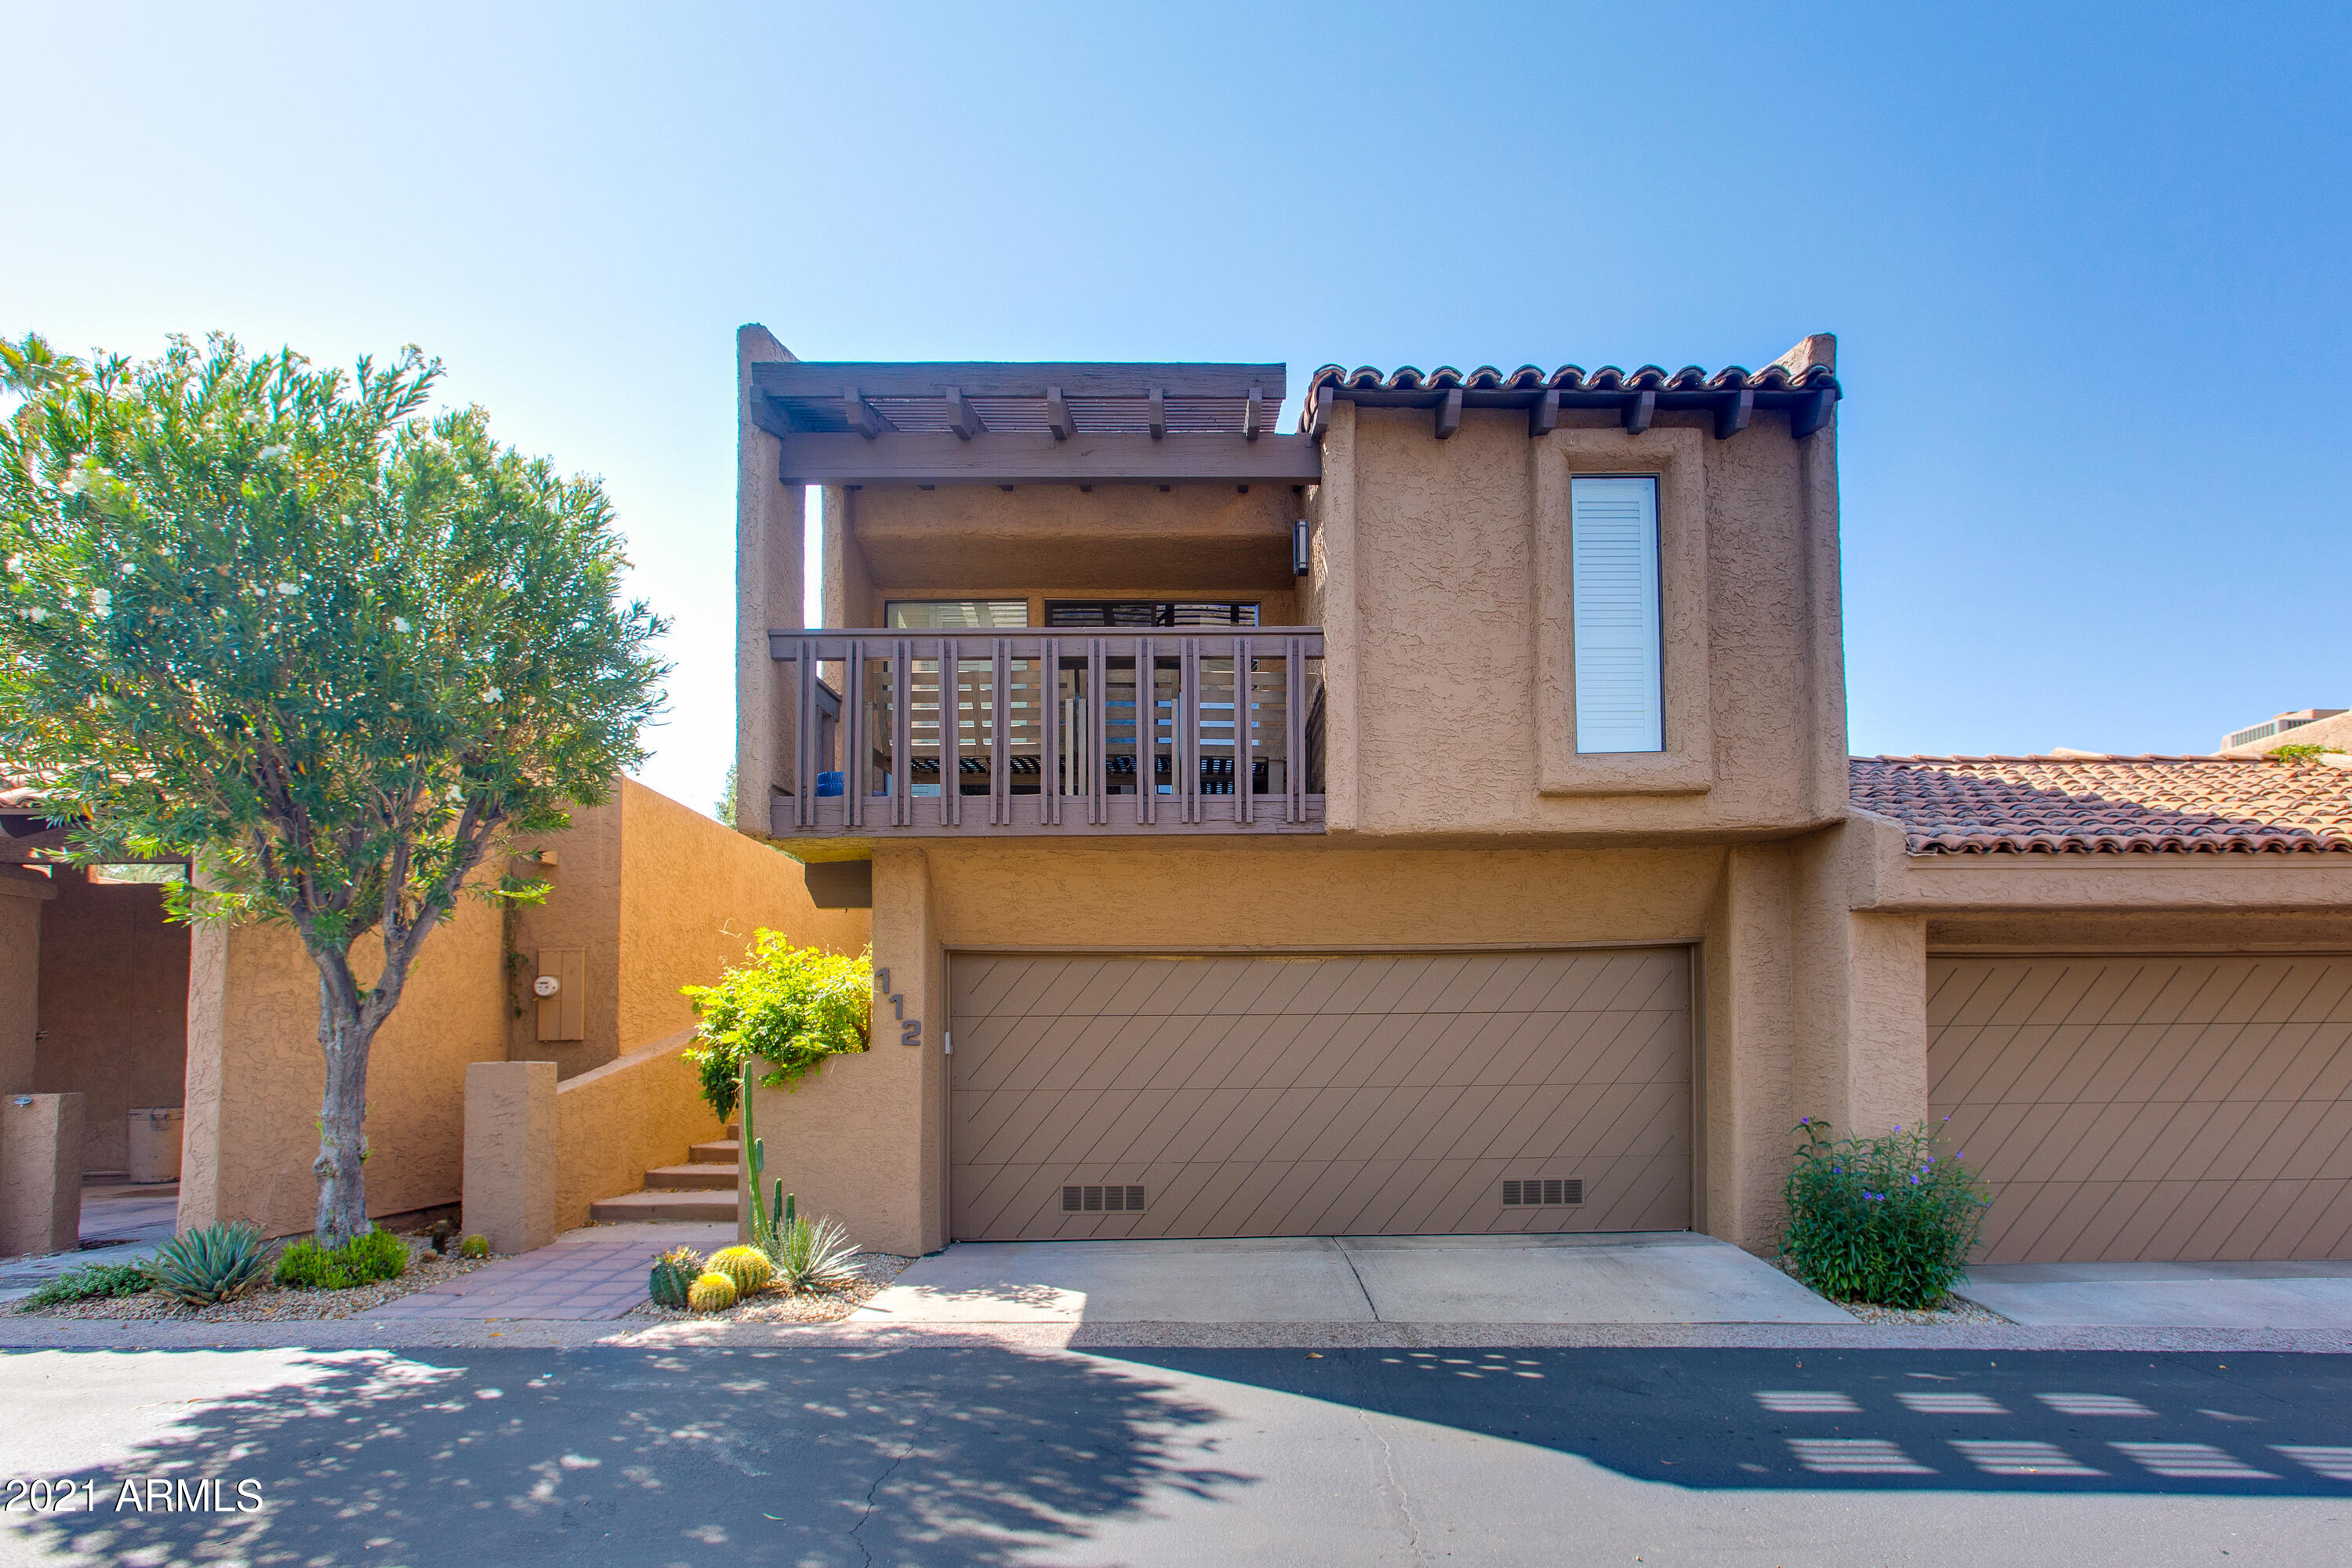 Tastefully designed and elegantly updated, this townhome features 3 bedrooms and 2 and a half baths and will impress the most discerning of buyers. Nestled within the 24-hour guard gated community of The Village at Camelback Mtn. this townhome is well appointed throughout and is completely turnkey. As you enter, a towering fireplace with custom stonework lies as the centerpiece of the great room, which also features a soaring vaulted ceiling. Pristine Brazilian Cherry hardwood floors adorn the first floor living spaces. A custom wet bar with built-in wine fridge and wine room make for the perfect entertaining spot. The kitchen boasts new white granite countertops and overlooks the professionally landscaped patio. The master suite features a separate sitting room, walk-in closet and private balcony, which affords stunning views of Camelback Mtn. The spacious master bath is equipped with a generously sized shower with custom tile work and a soaking tub. 2-car garage, ample storage, plantation shutters, Lutron lighting system and more. Unbeatable location: walking distance to numerous Arcadia restaurants, AJ's Fine foods, Steak 44, The Village Health Club and the new Global Ambassador Hotel which is coming soon.